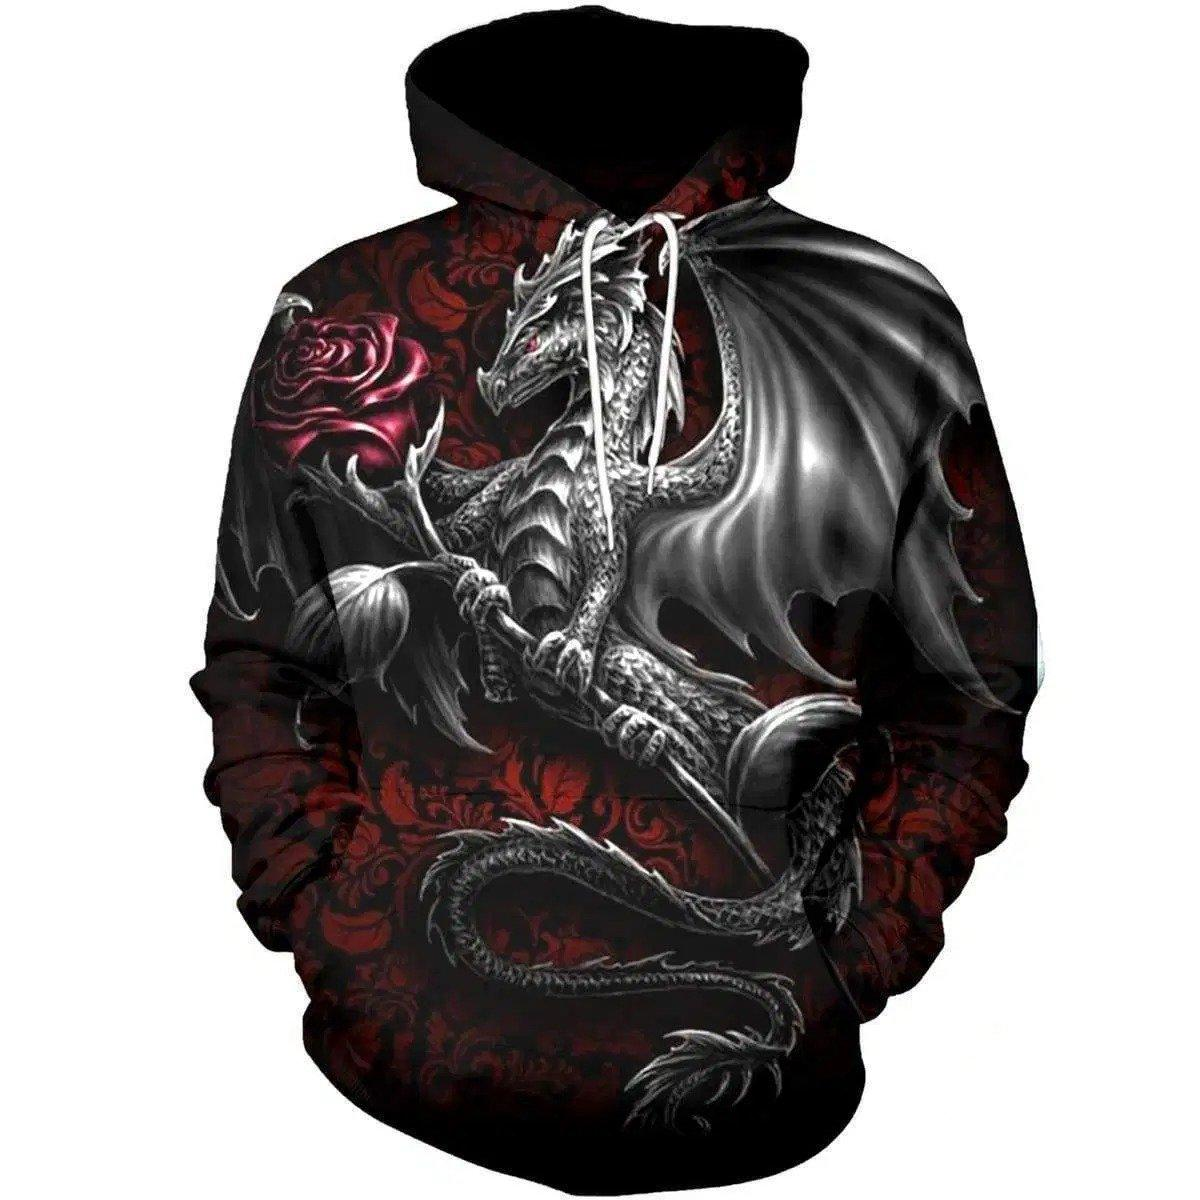 3D All Over Print Dragon Hoodie NM050909